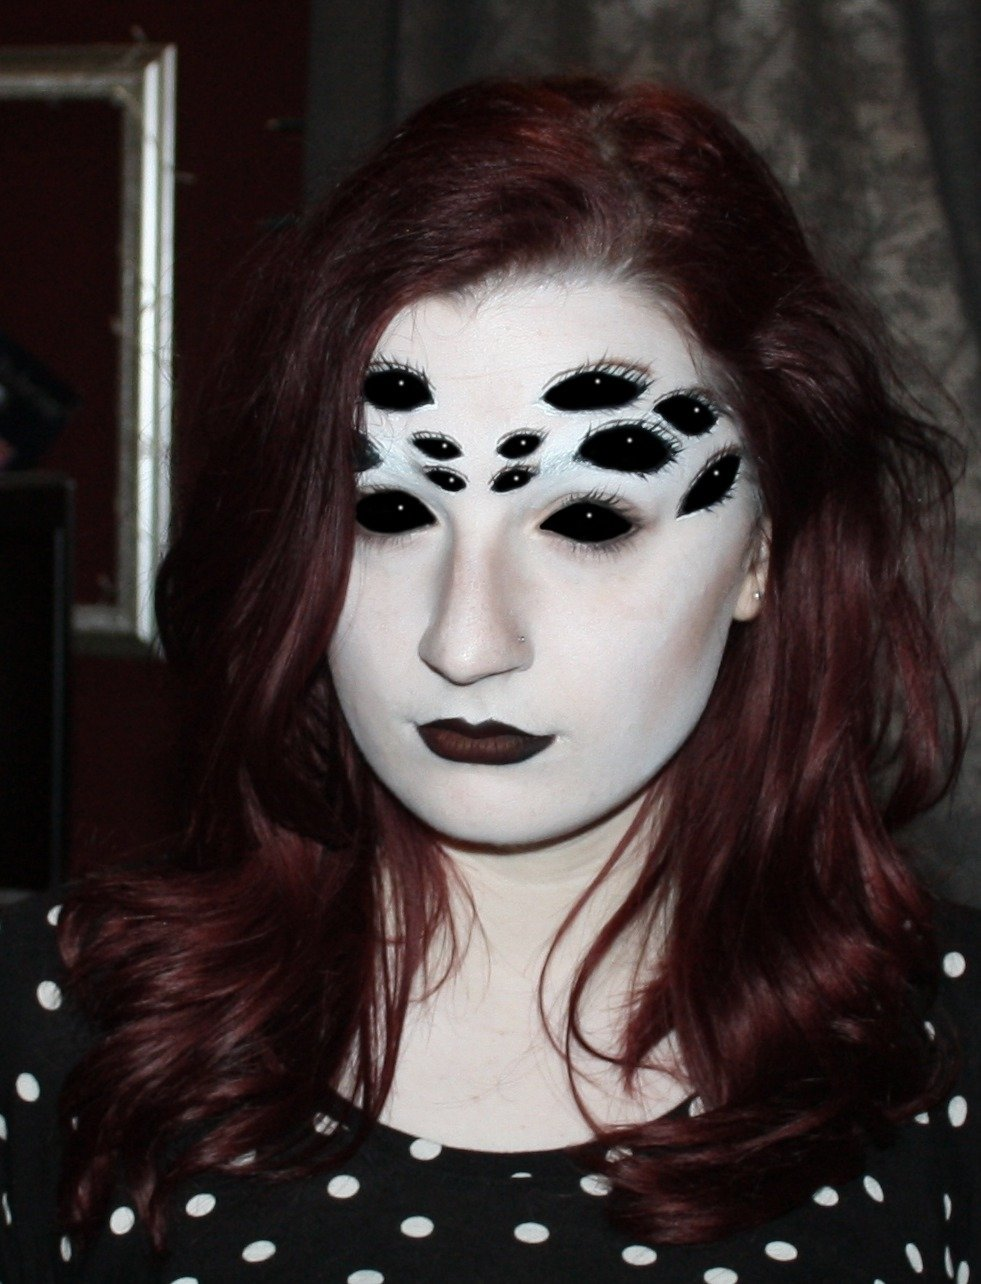 10 Best Face Painting For Halloween Ideas creepy spider eyes make up design perfect for halloween 5